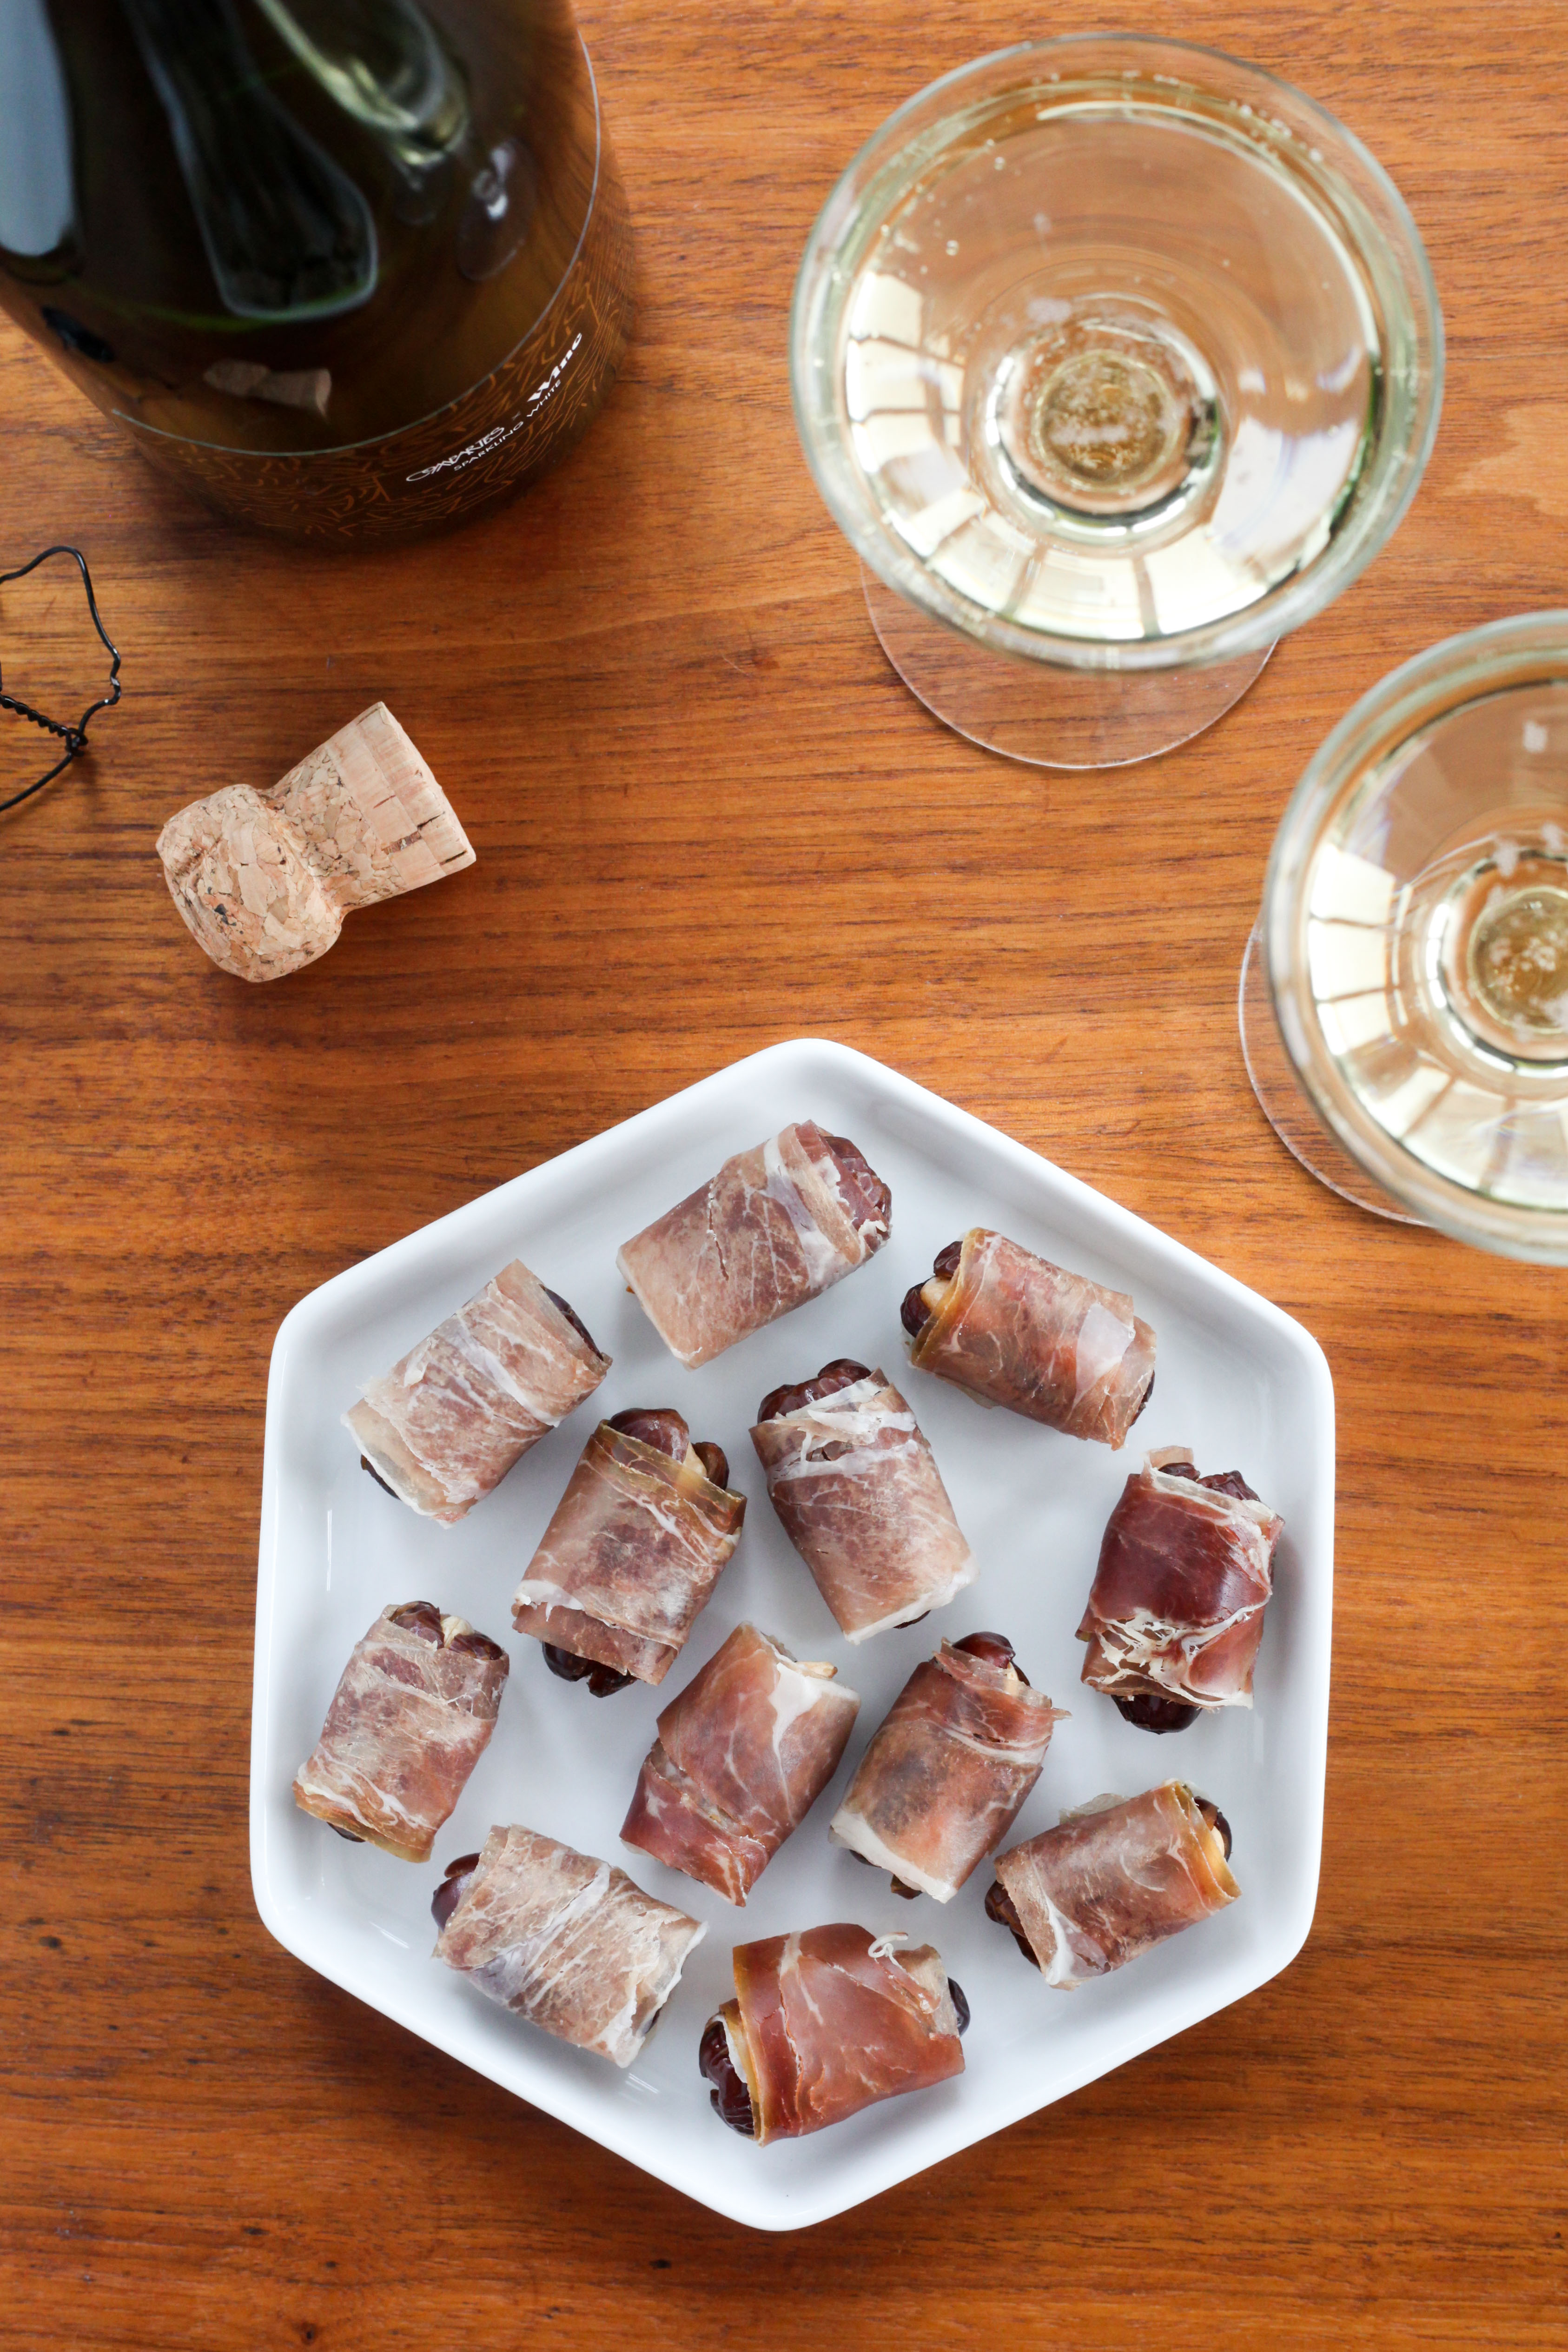 Prosciutto-Wrapped Almond-Stuffed Dates | amodestfeast.com | @amodestfeast